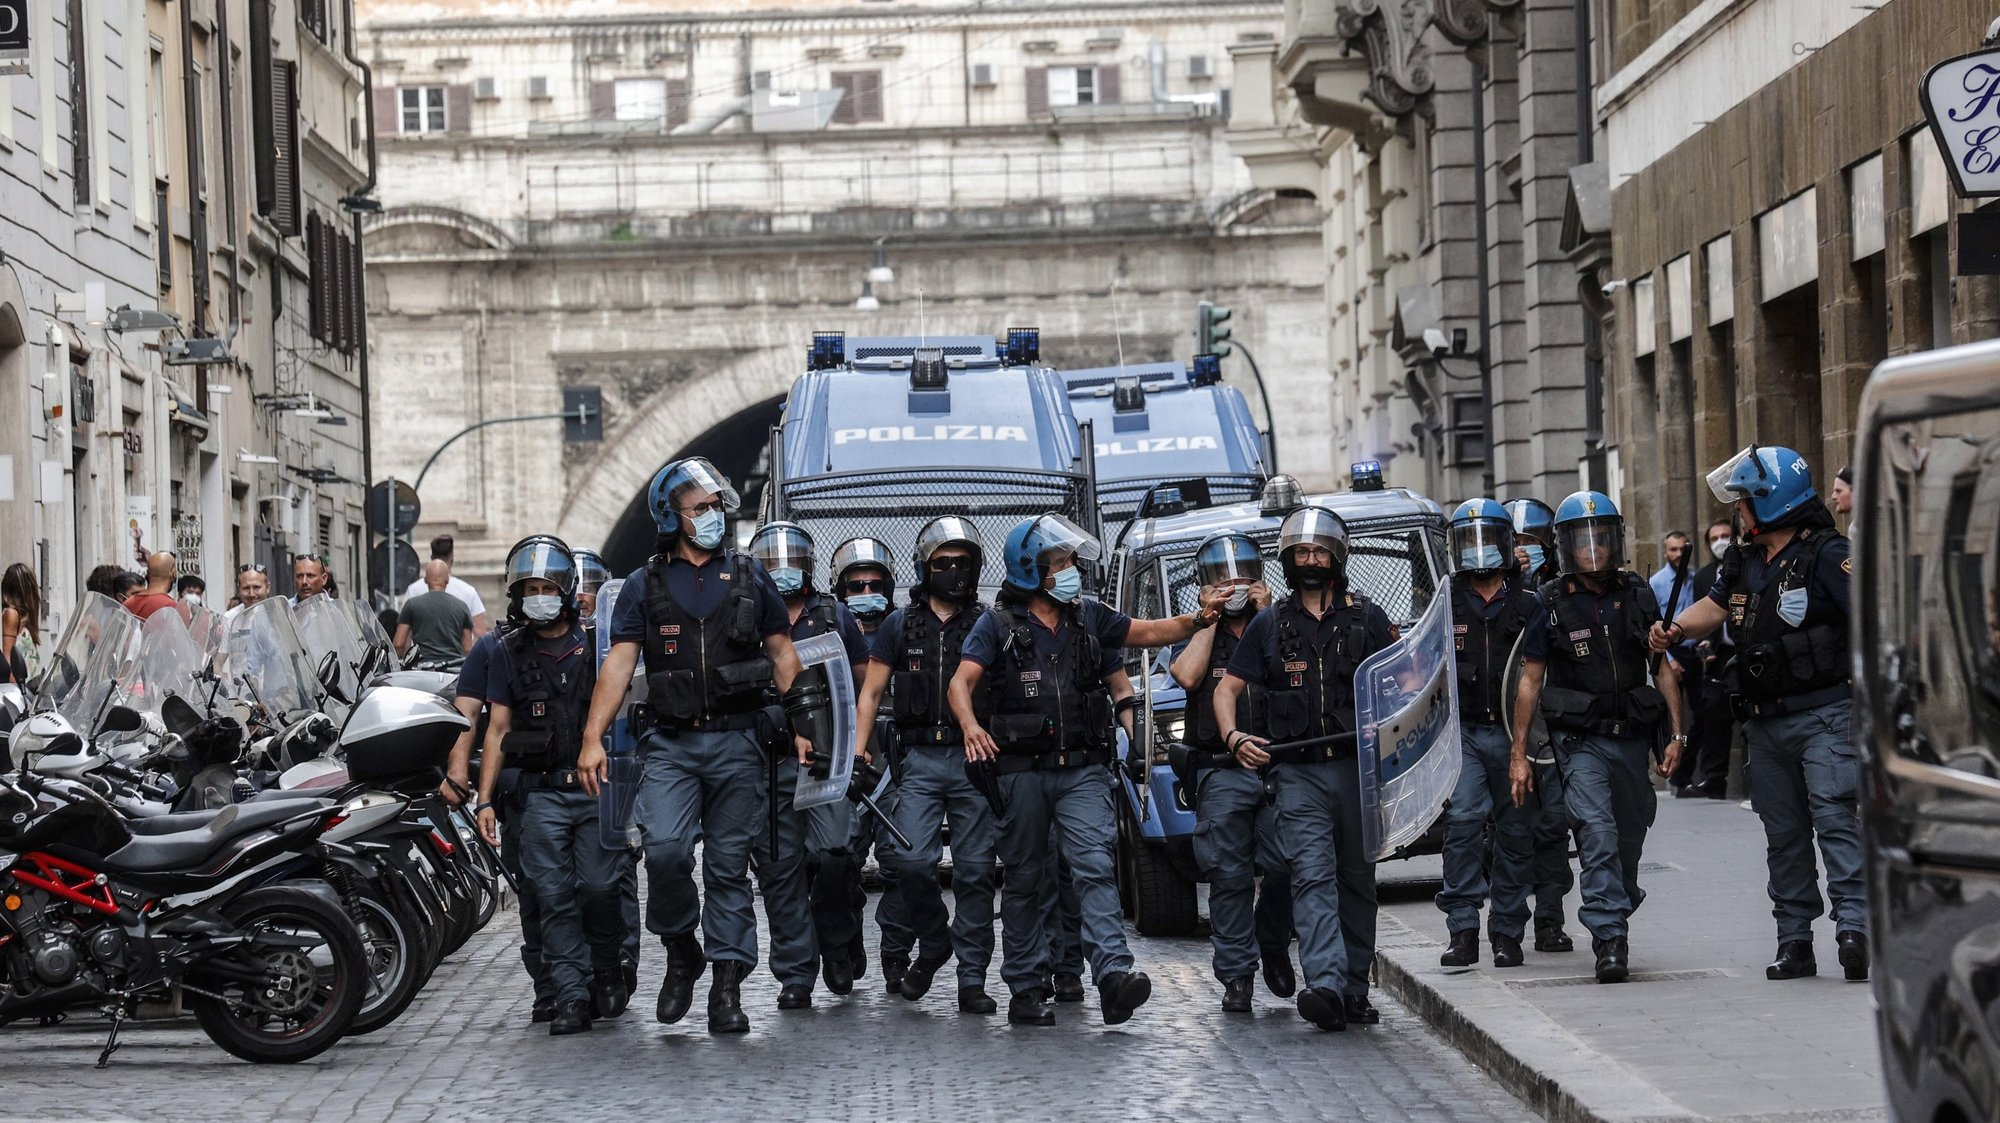 epa09371485 Anti riot police move in during a demonstration against the Green Pass in Rome, Italy, 27 July 2021. The protesters clarified that 'the purpose of the demonstration is not to go against those who want to vaccinate themselves, but give a clear message to the Italian Government that it is not possible to place a mark or a certification to people' and also that 'the Green Pass does not protect, because even those who have made the vaccine can infect, so we don't understand the basic sense, if not that restrictive of personal freedom', the organizers said. According to the Italian government, access to cinemas, stadiums, museums, gyms, swimming pools, theaters, and in-door dining will only be allowed to people carrying the 'Green Pass', a document proving that its carrier received the vaccine against COVID-19, starting 06 August.  EPA/GIUSEPPE LAMI